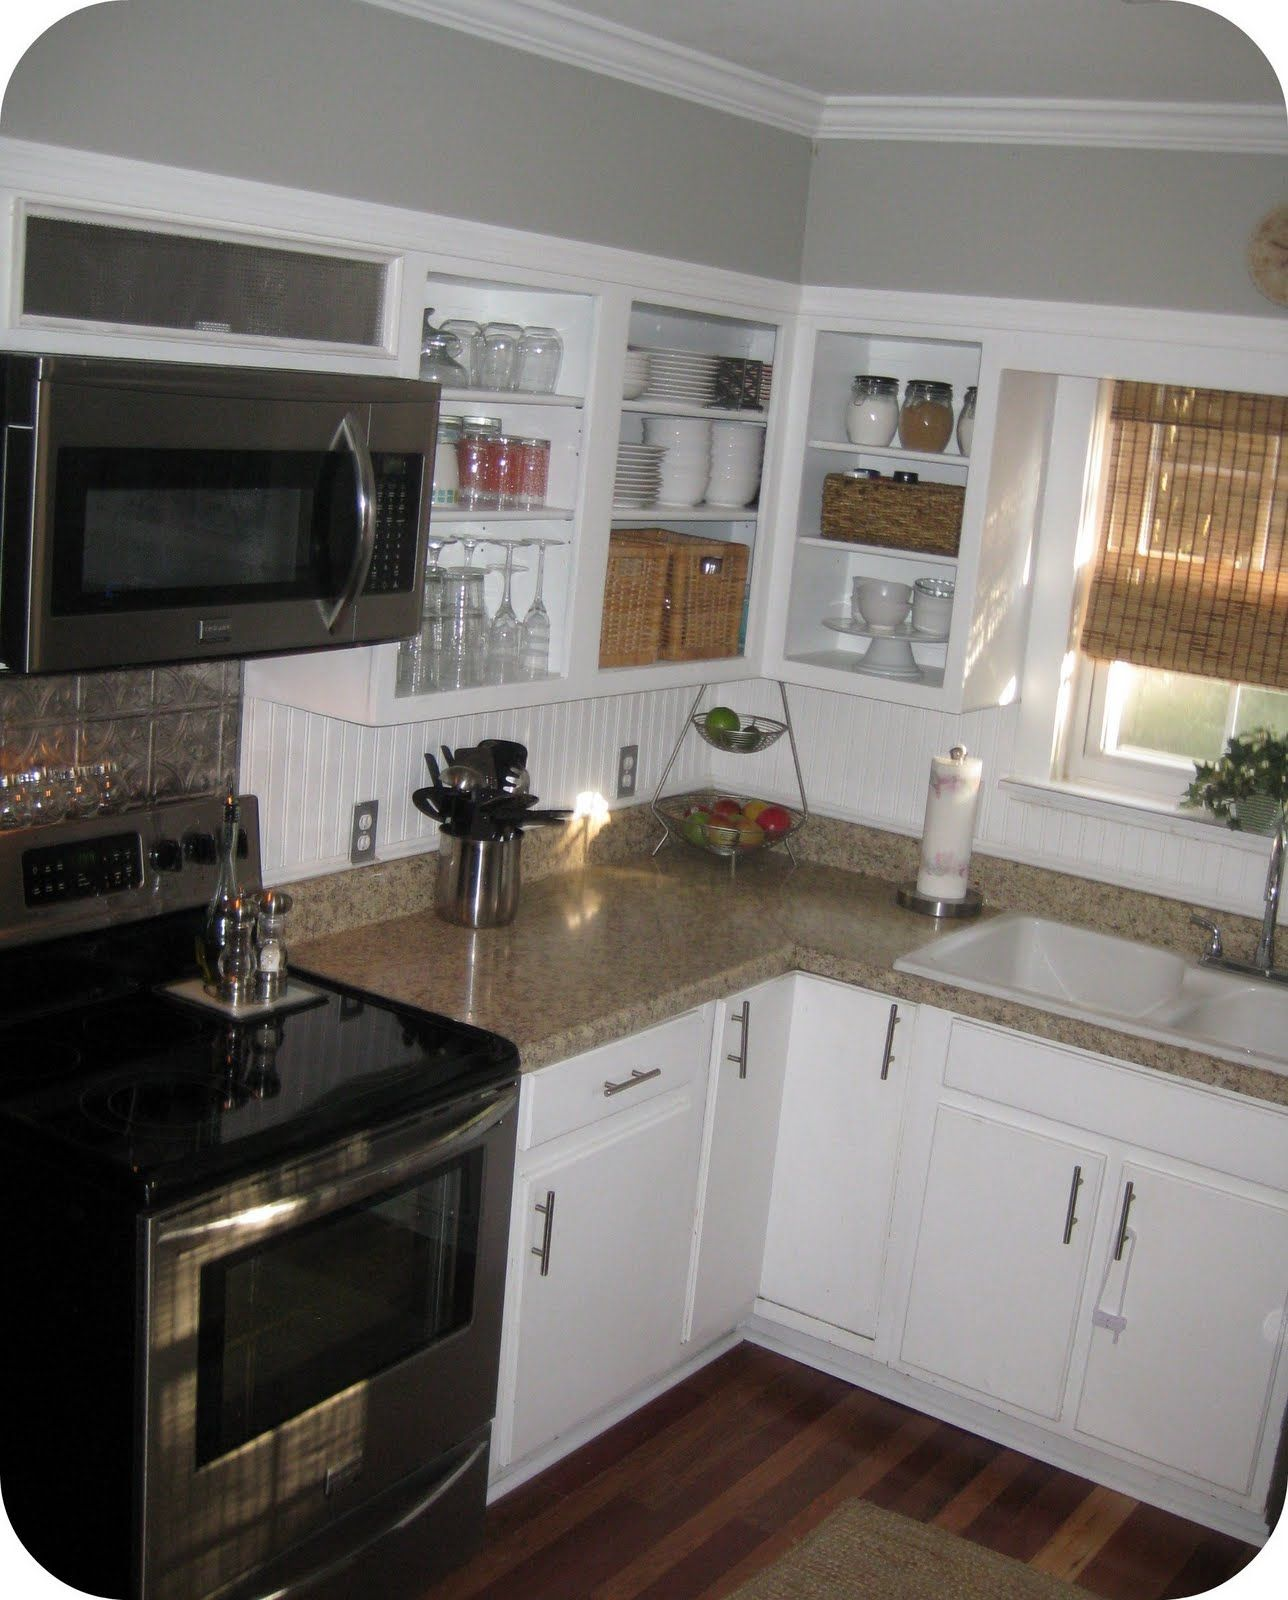 Low Budget Kitchen Cabinets: Faux Metal Tiles And Beadboard